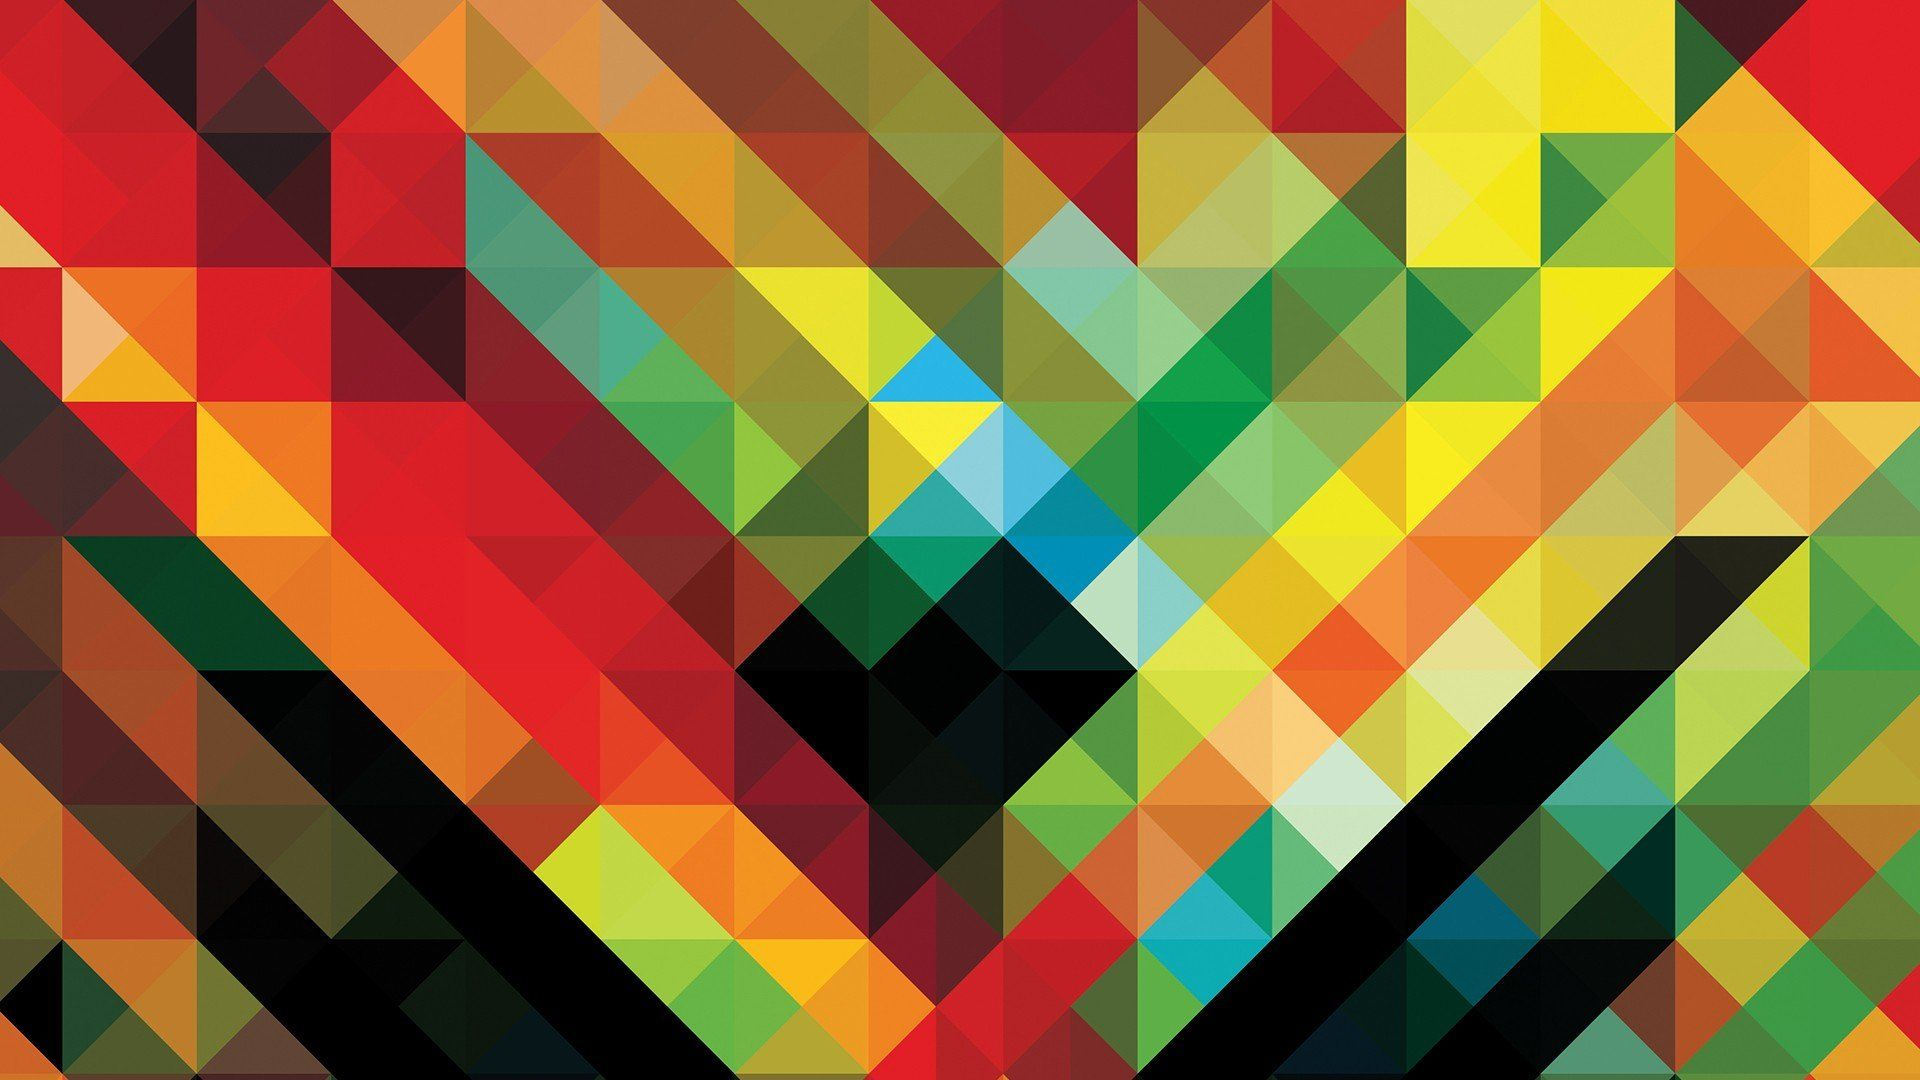 africa-hitech-andy-gilmore-geometry-colorful-abstract-patterns.jpg (1920×1080)